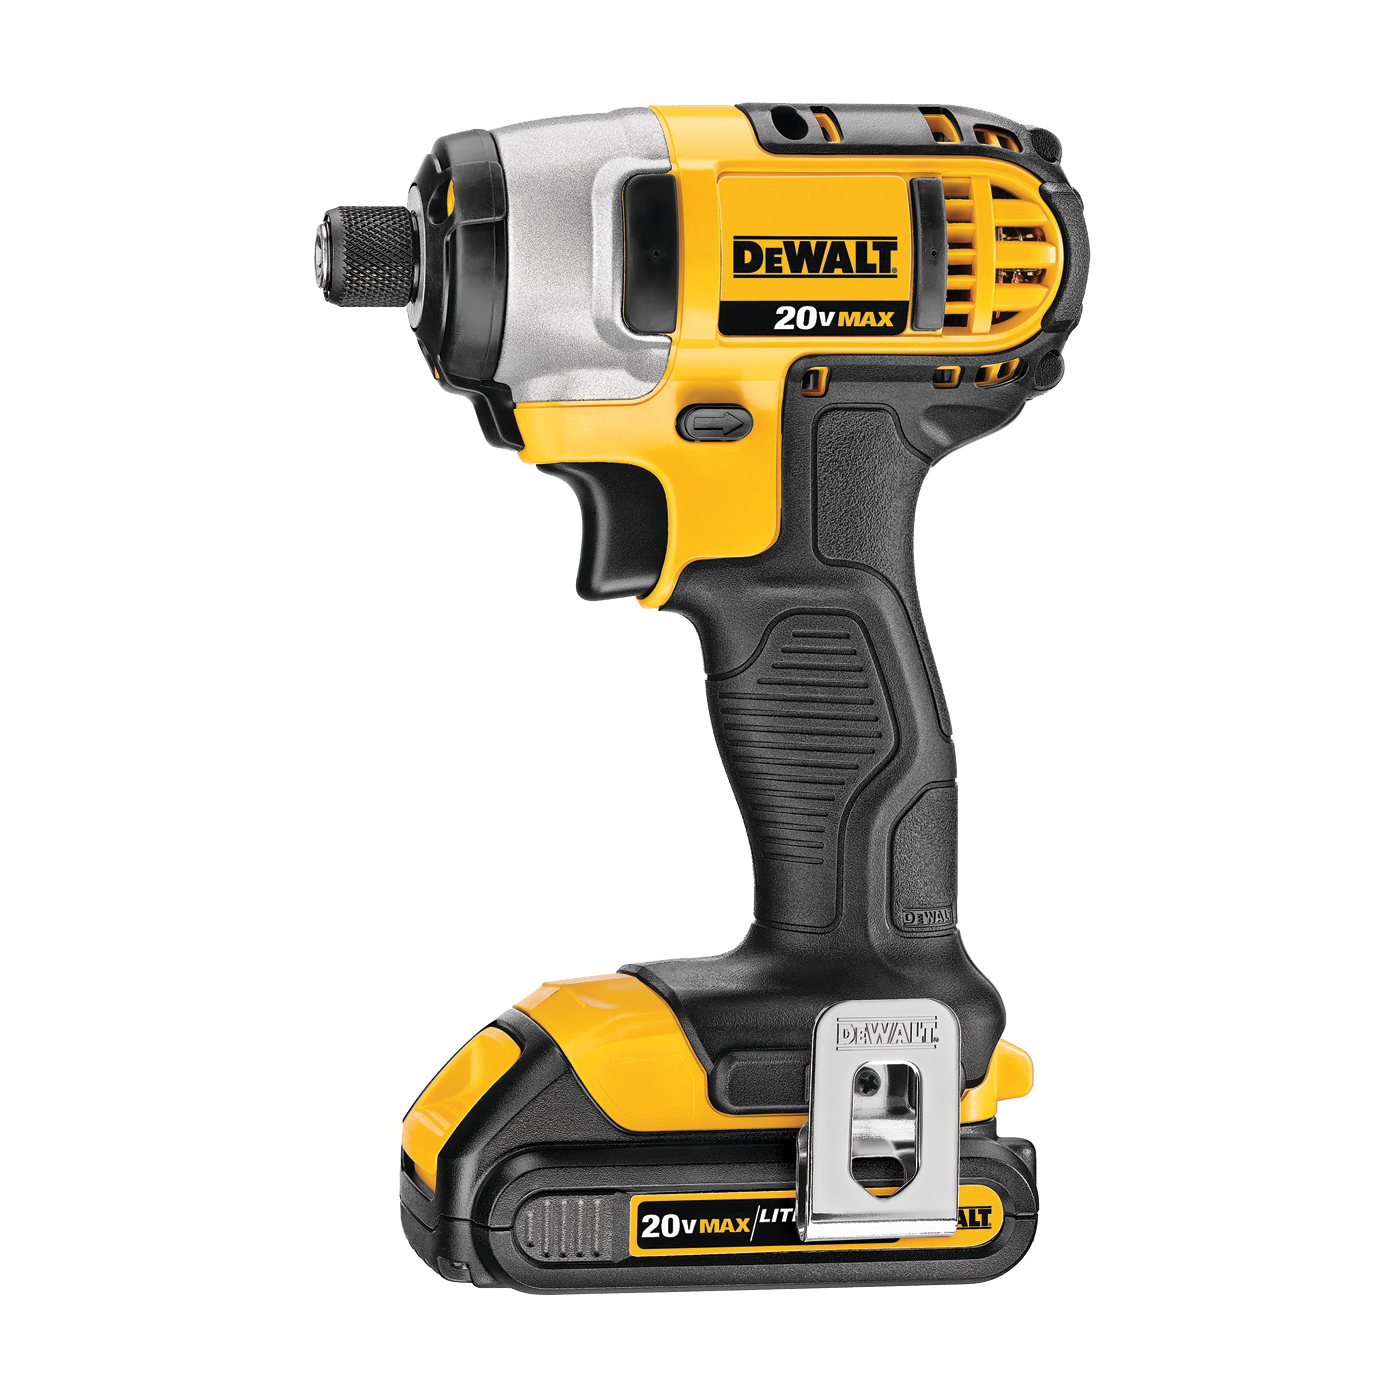 Picture of DeWALT DCF885C2 Impact Driver Kit, Kit, 20 V Battery, 1.5 Ah, 1/4 in Drive, Hex Drive, 3200 ipm IPM